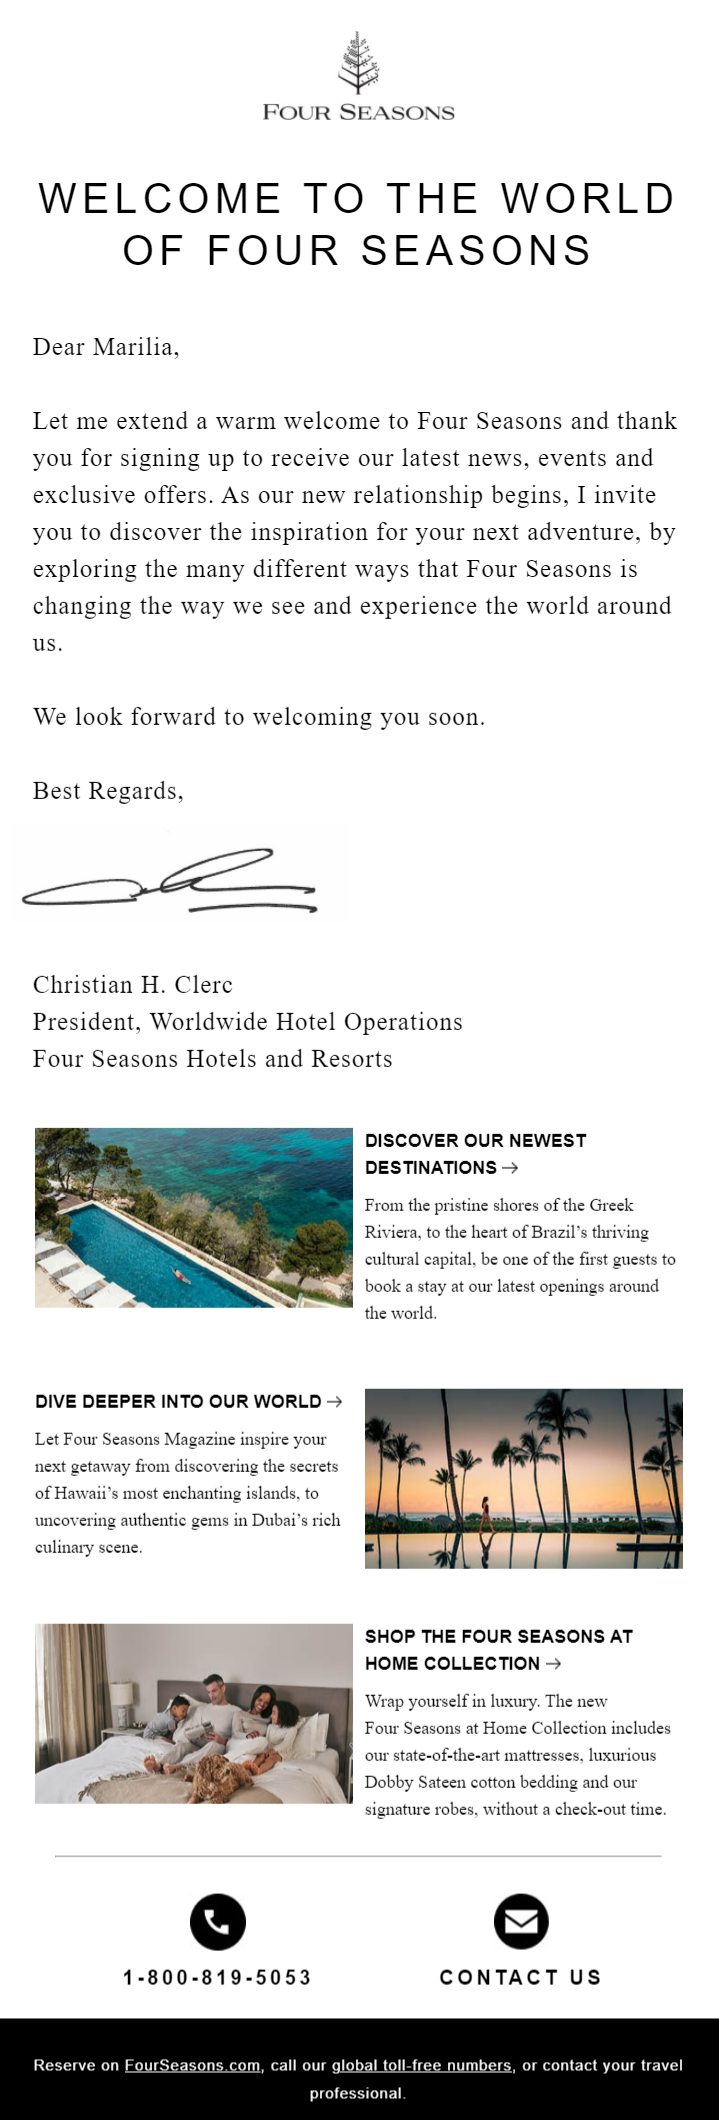 welcome sequence by four seasons